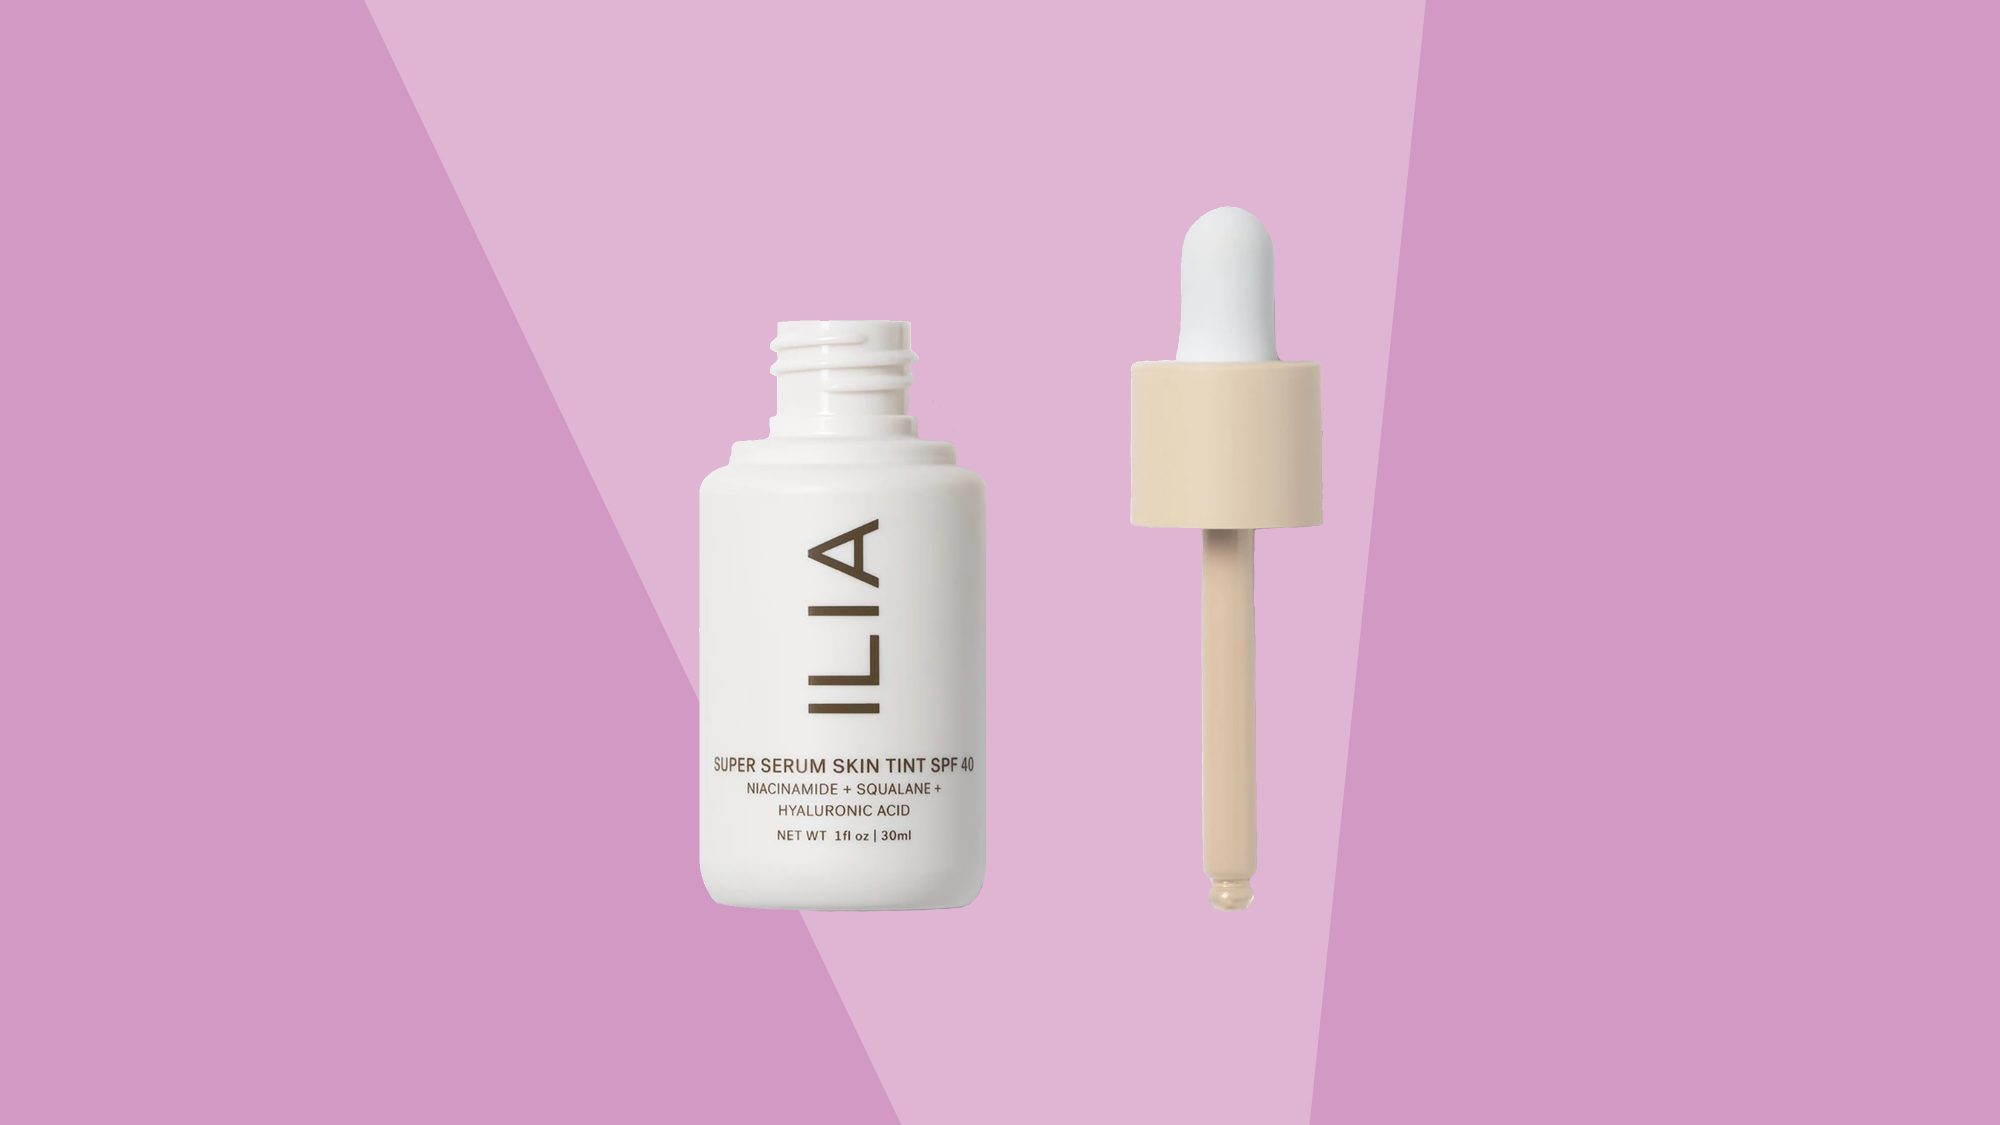 ILIA Beauty Super Serum Skin Tint